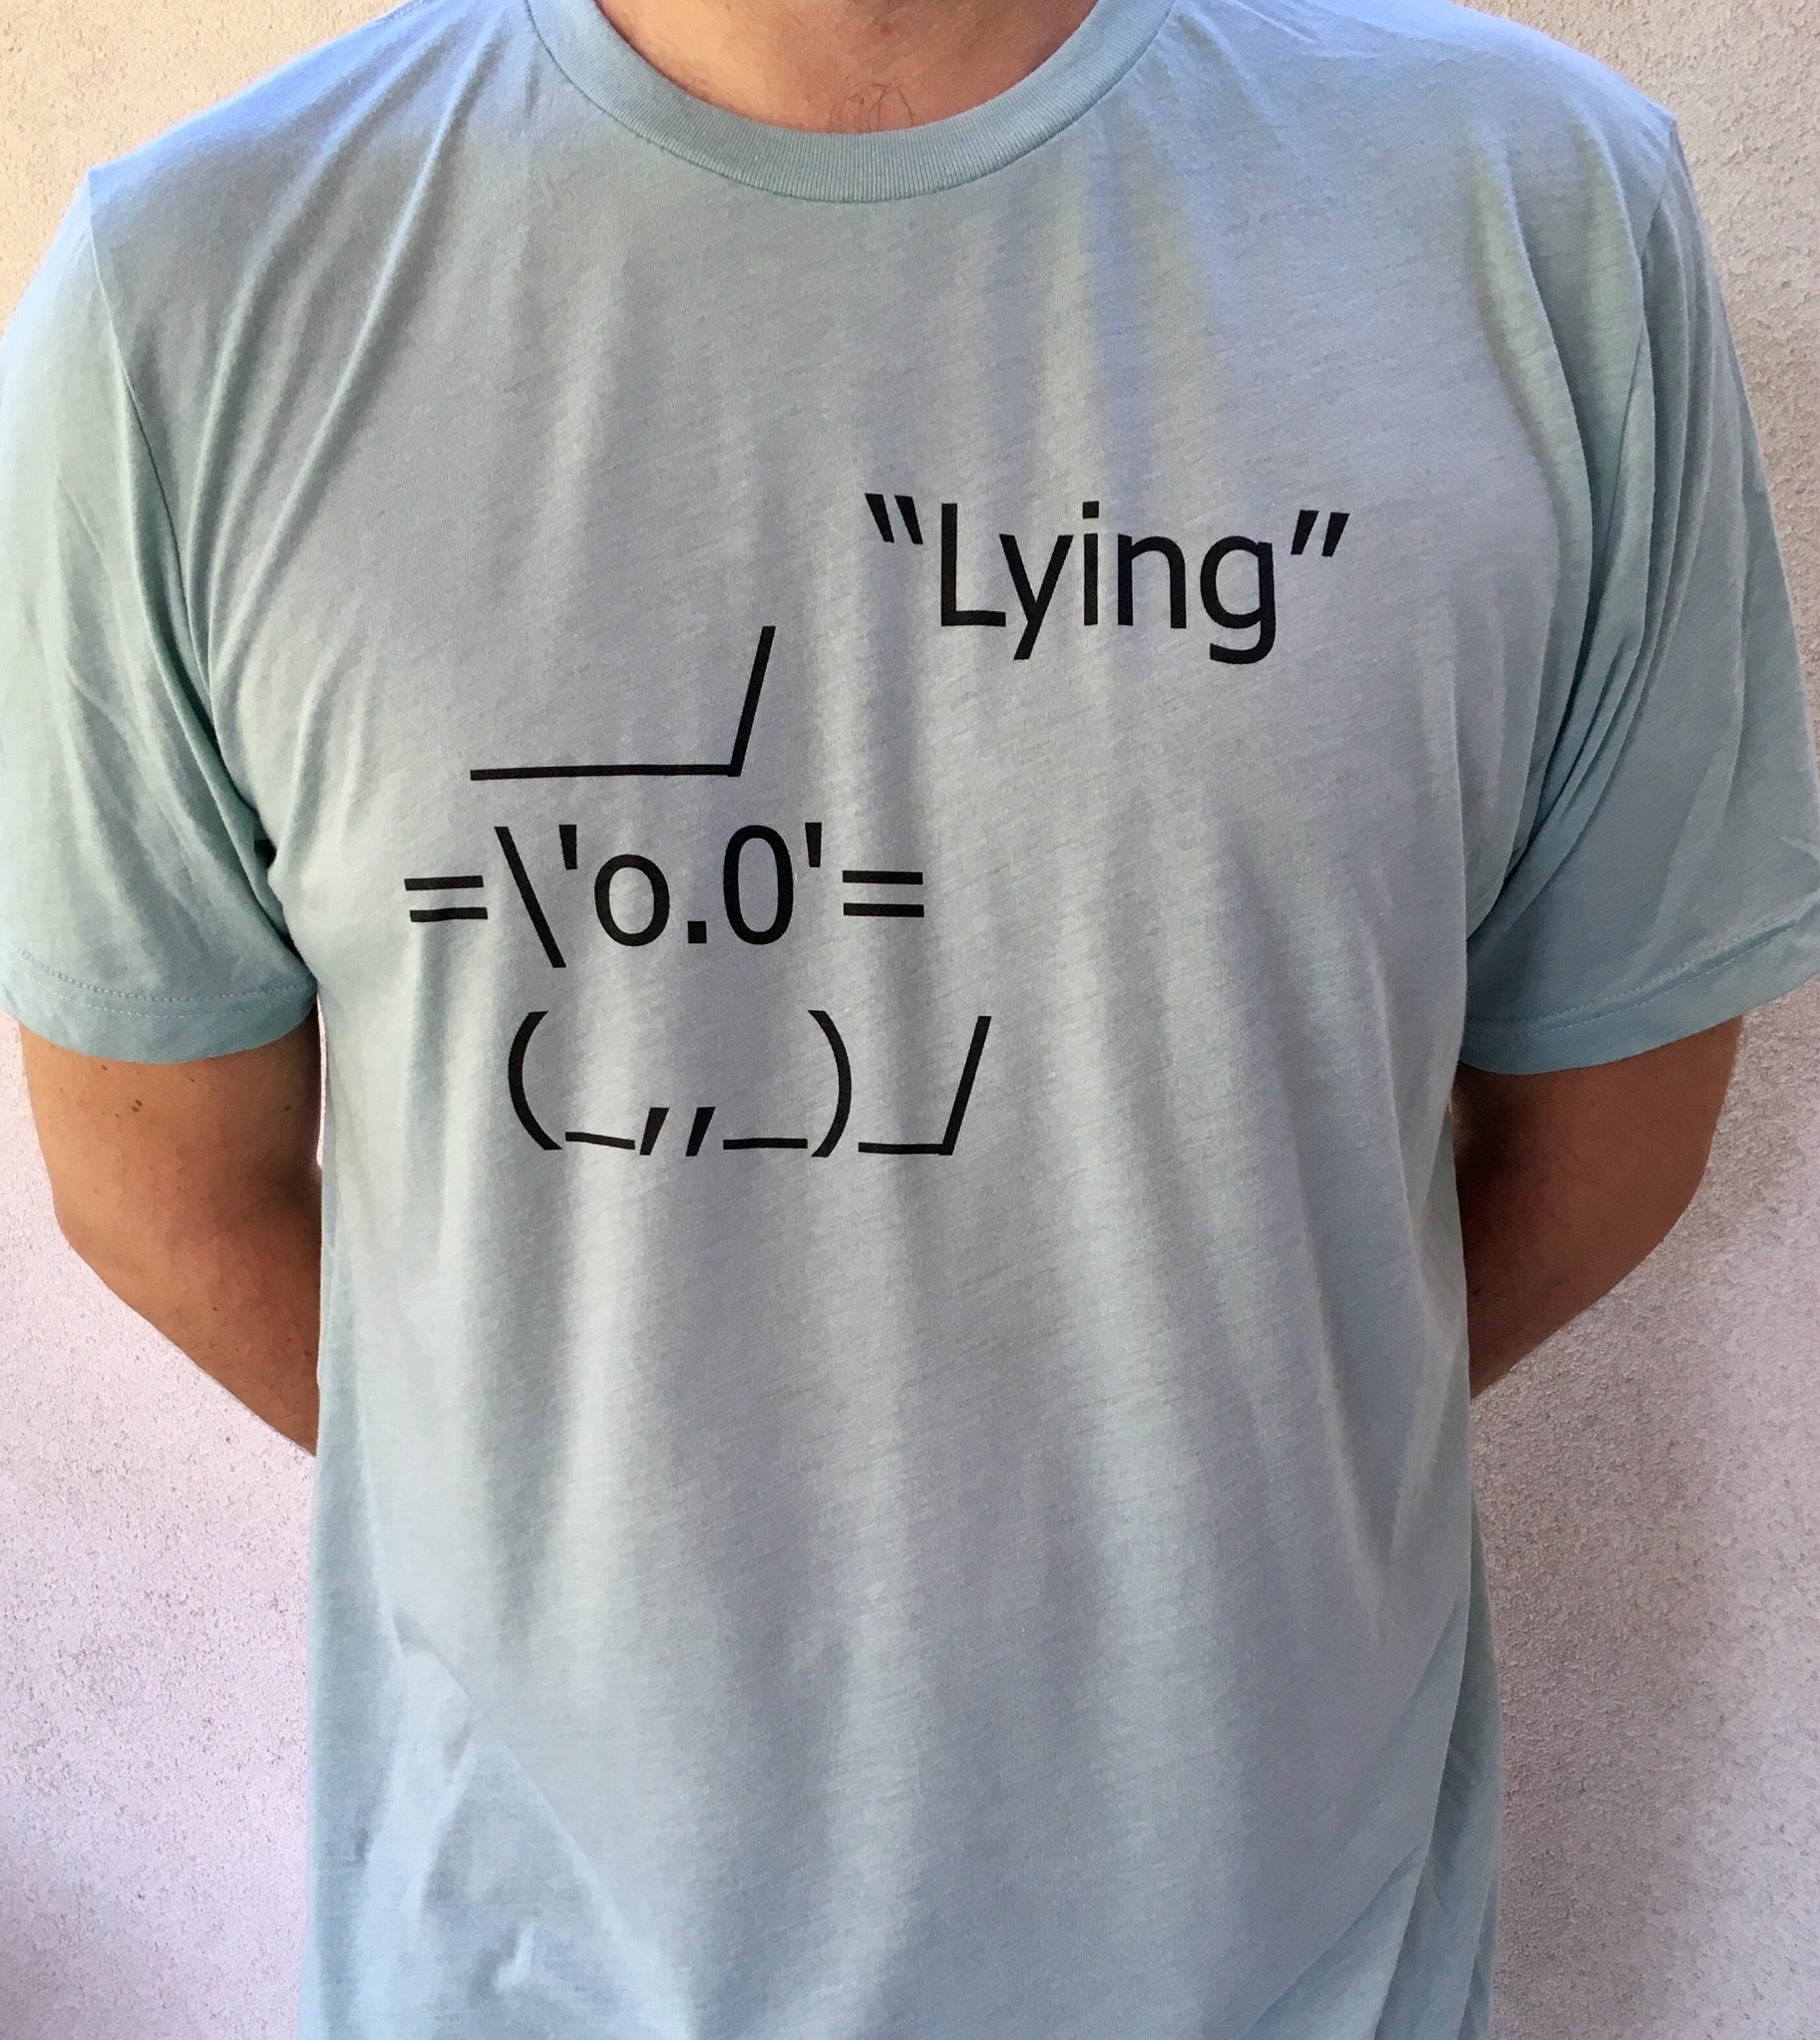 Lying Cat T-Shirt - Tractor Beam Apparel